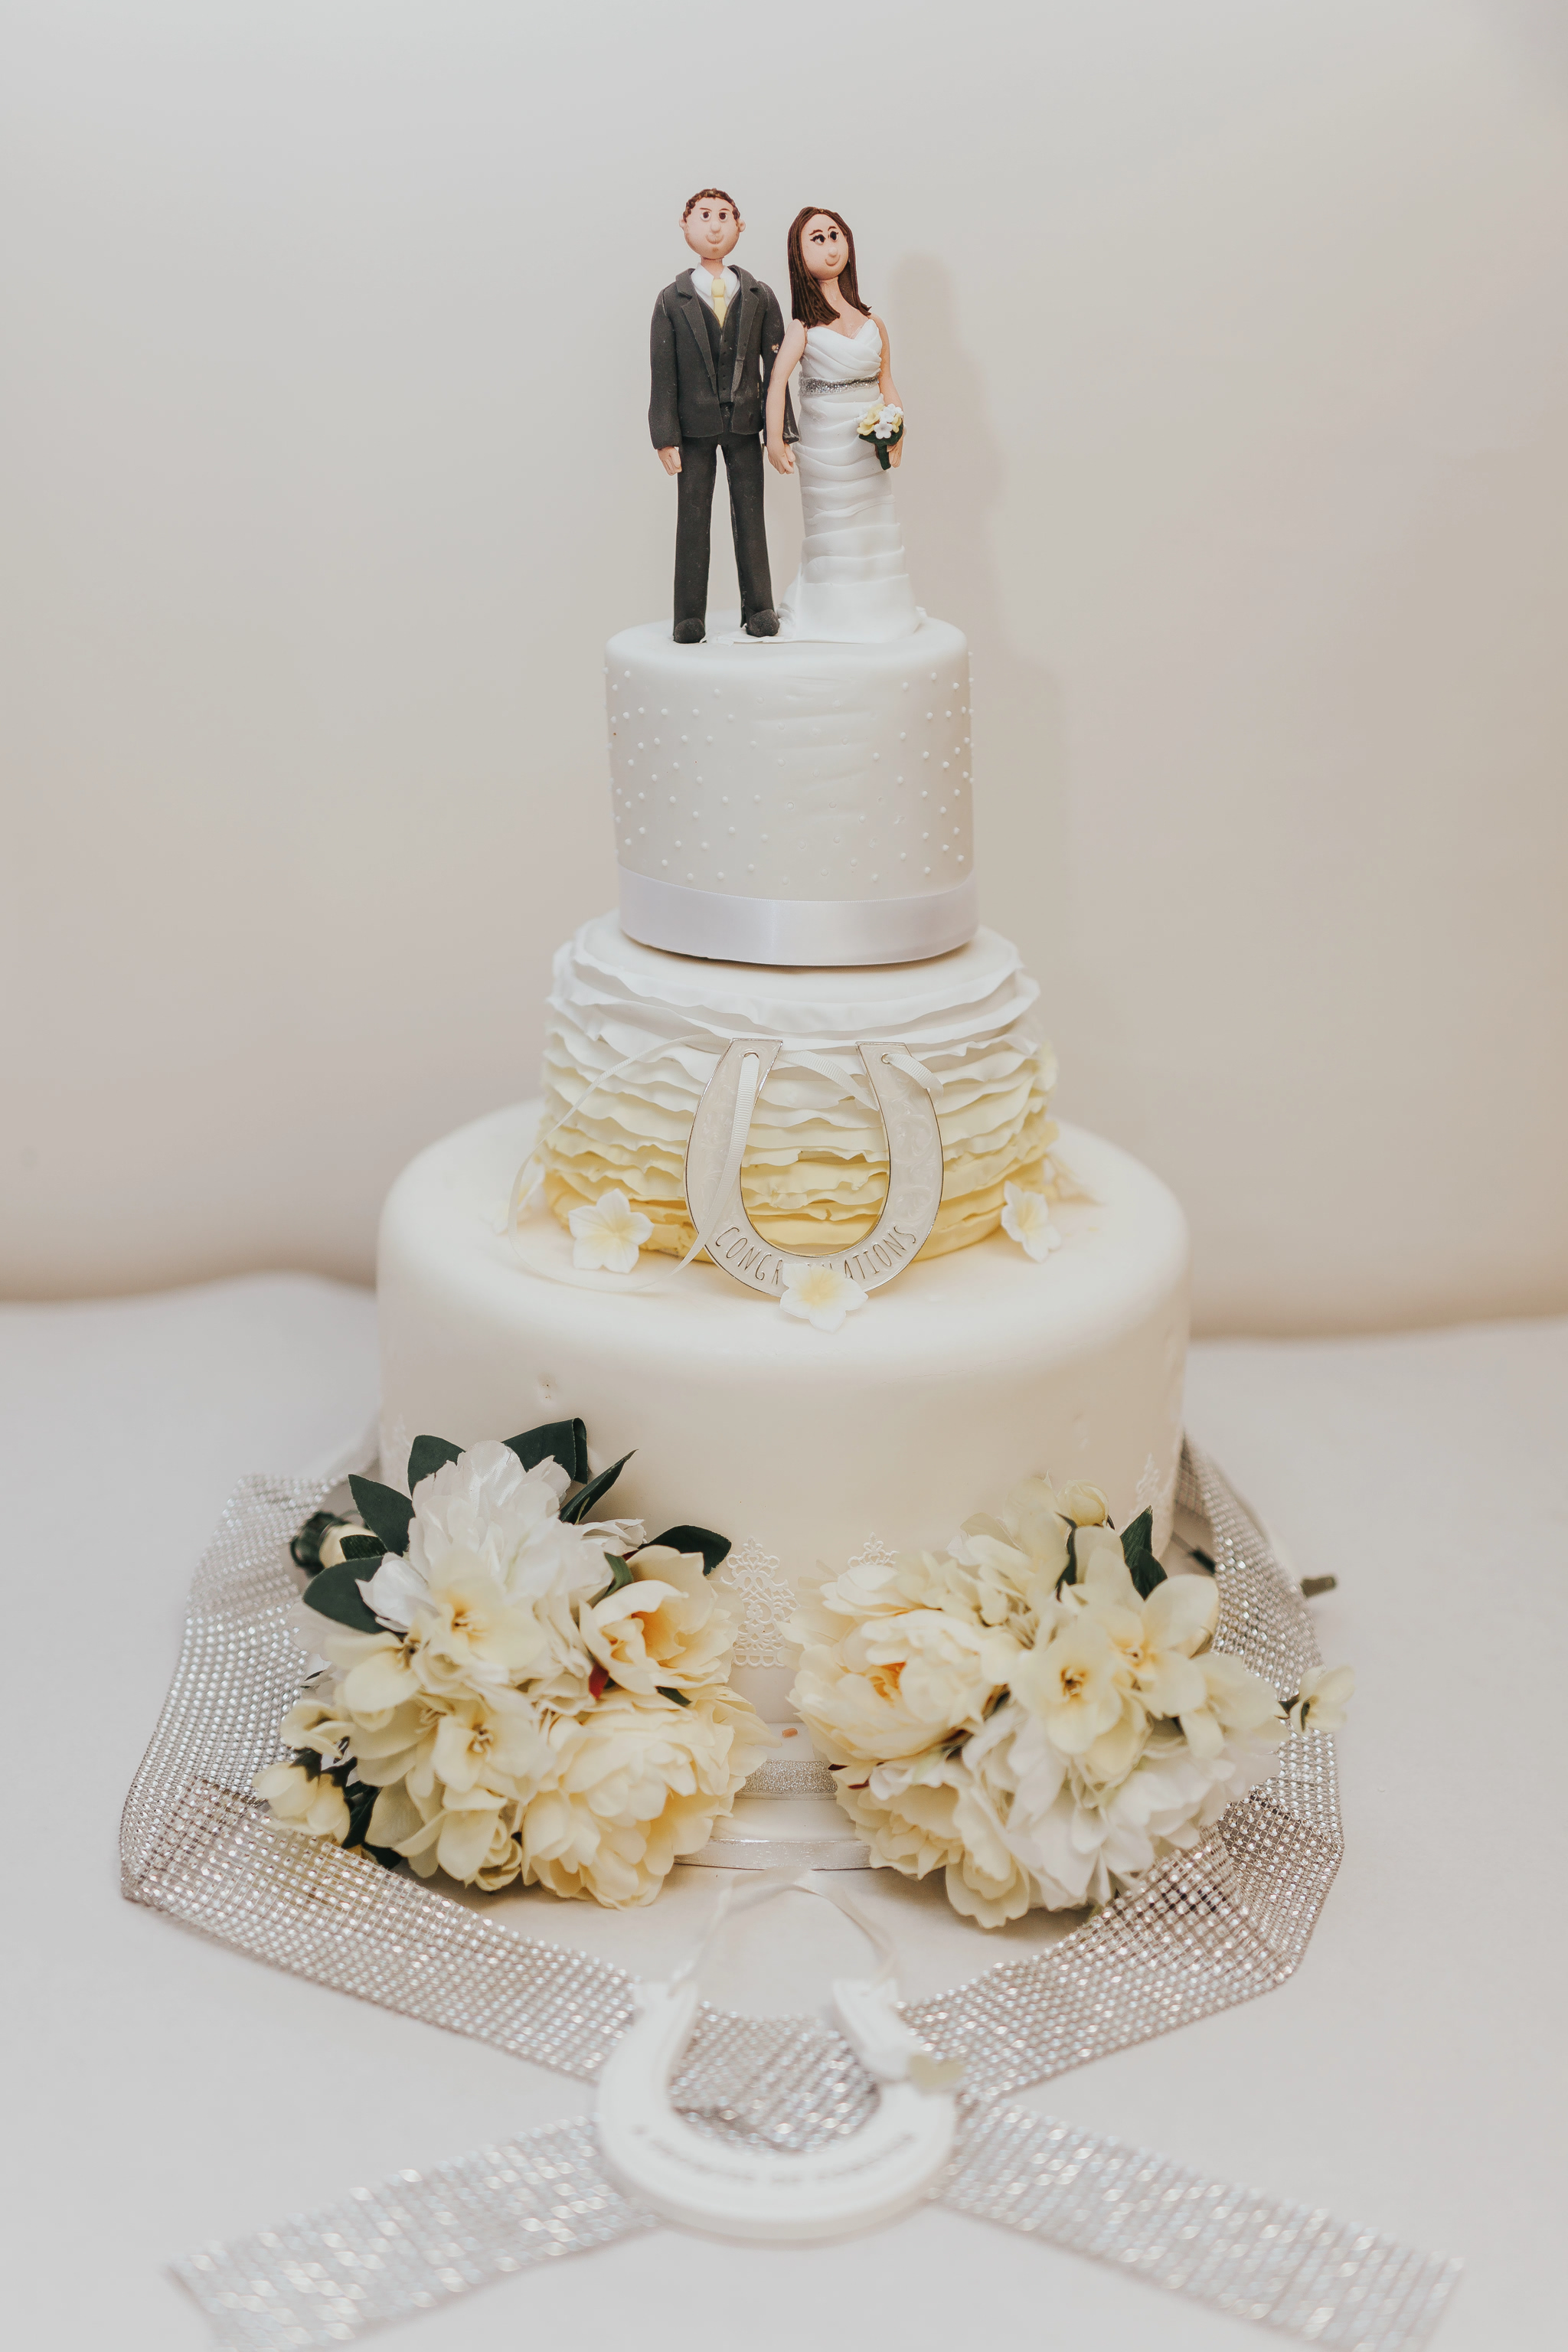 My favourite wedding cakes of 2017 as a wedding photographer...